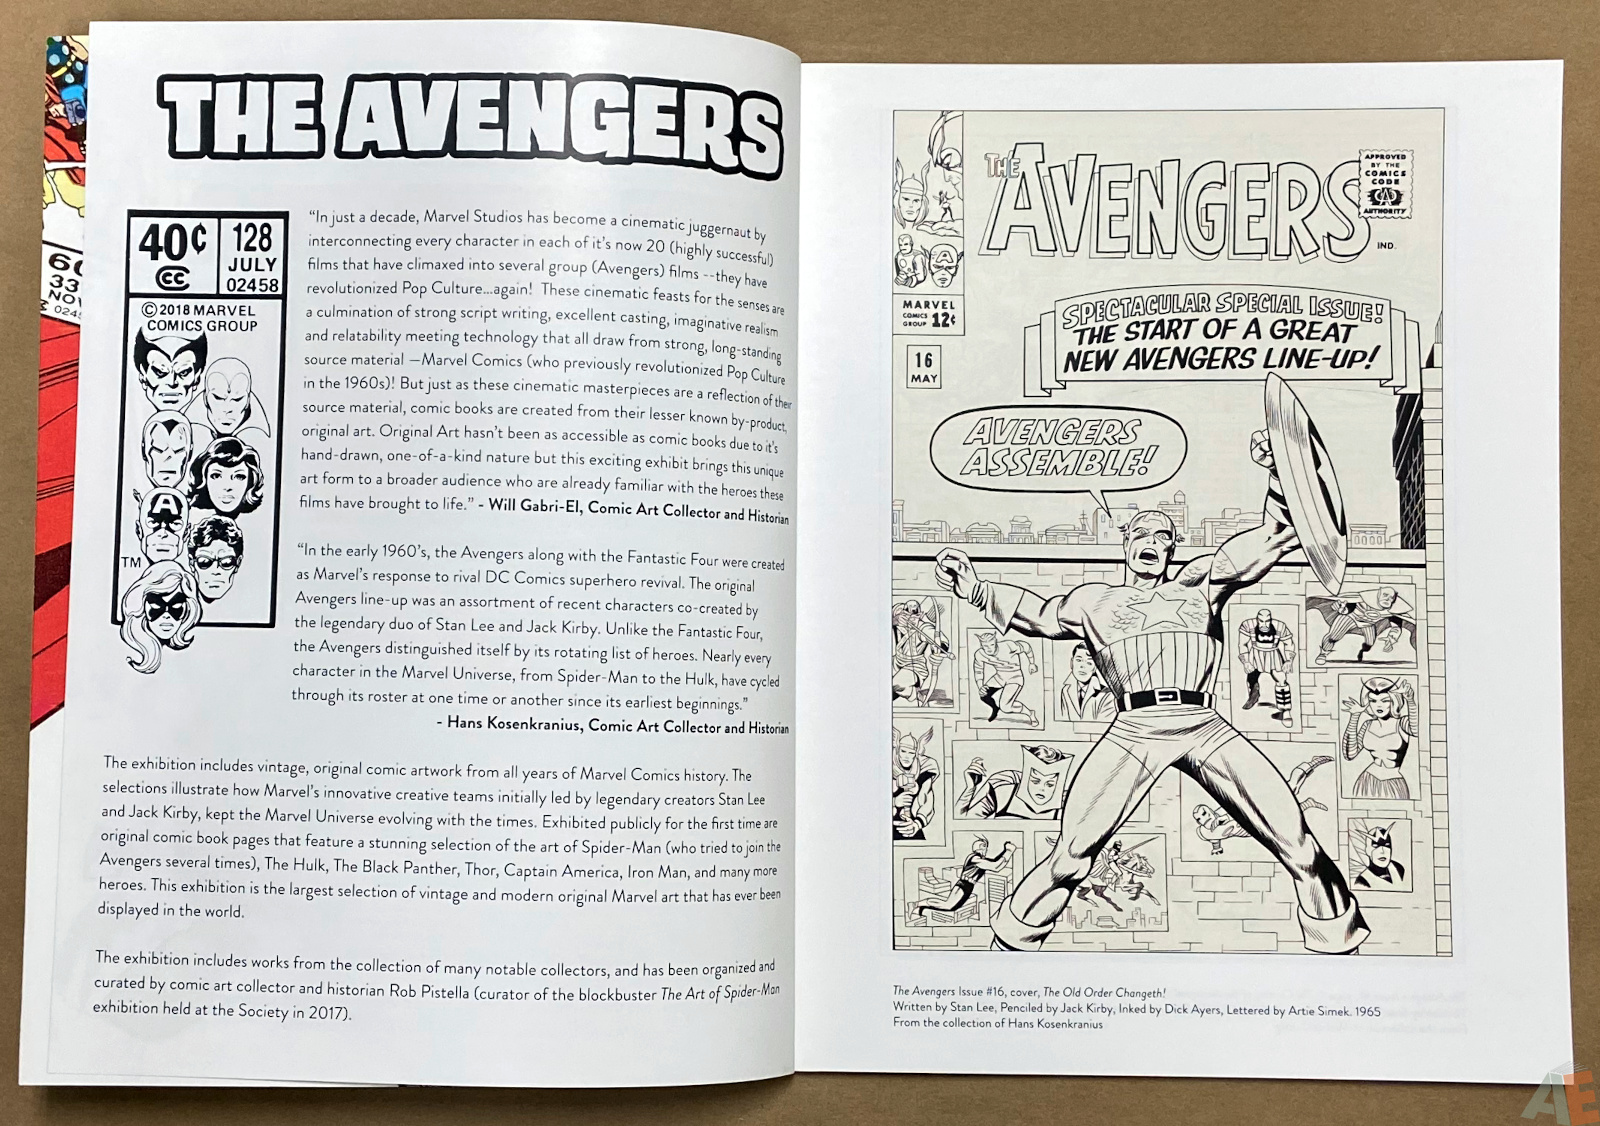 The Art of The Avengers and Other Heroes Exhibition Catalog interior 1